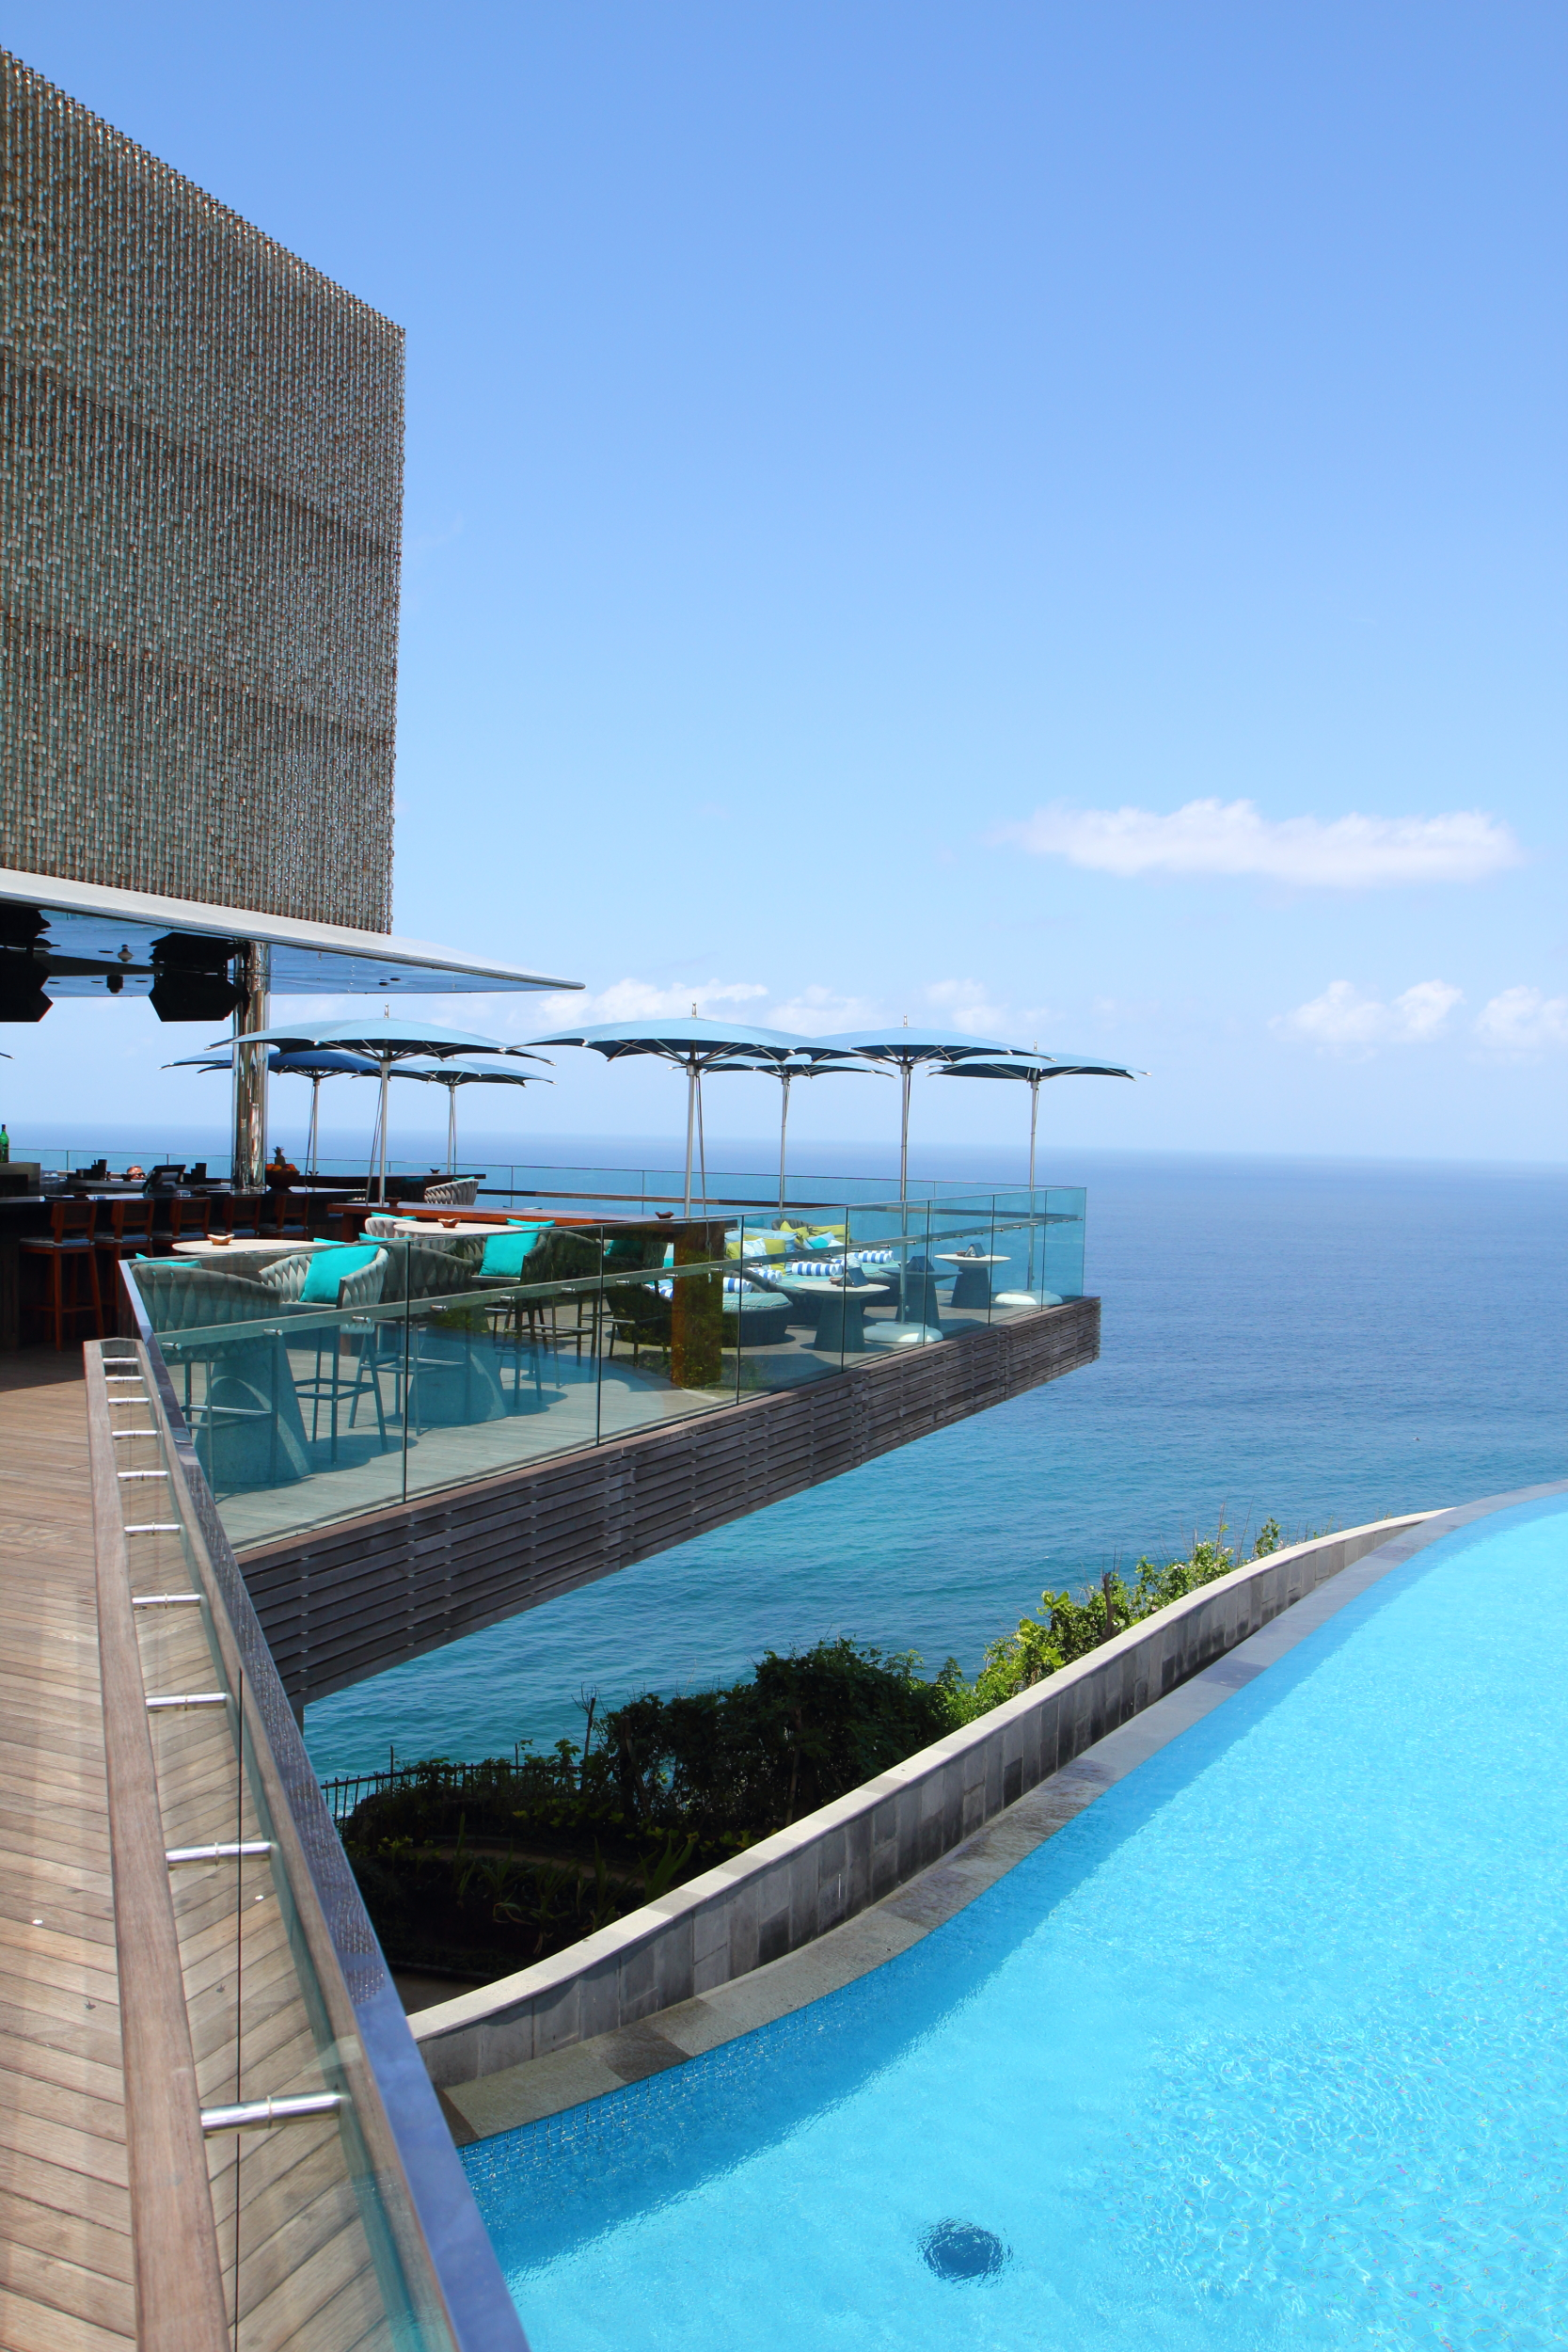 Omnia Day Club - Uluwatu, Bali - Bali's Best Beach Clubs